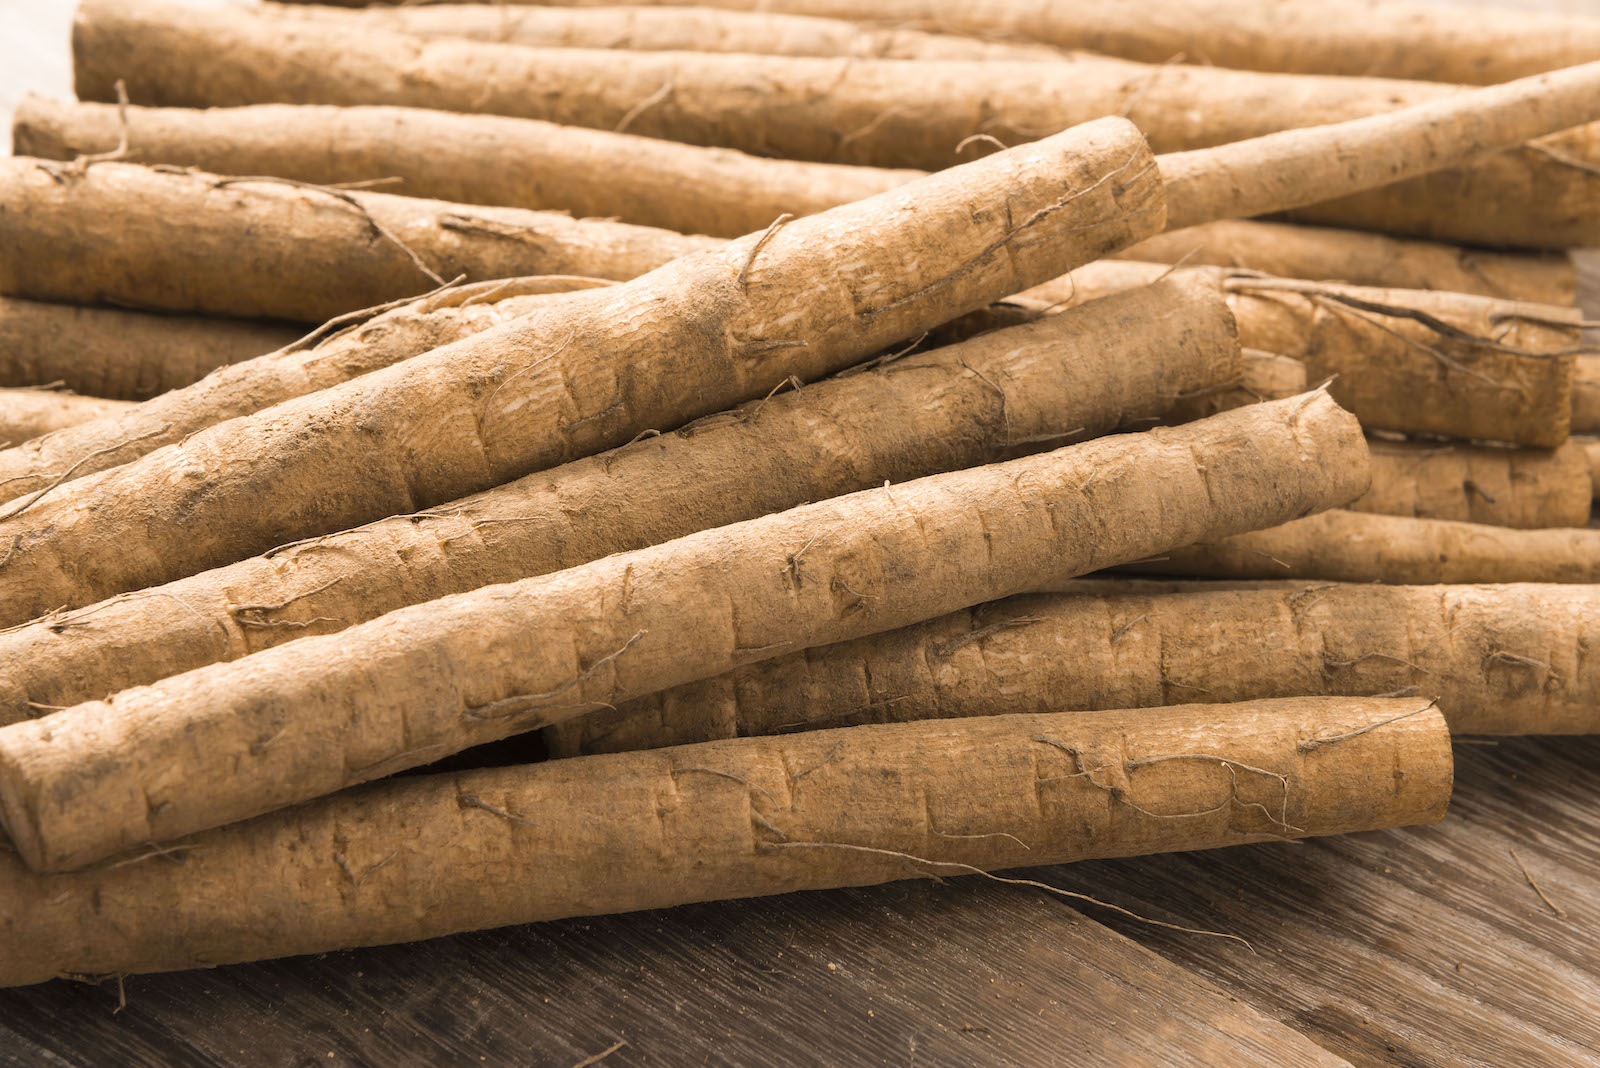 Burdock root substitute